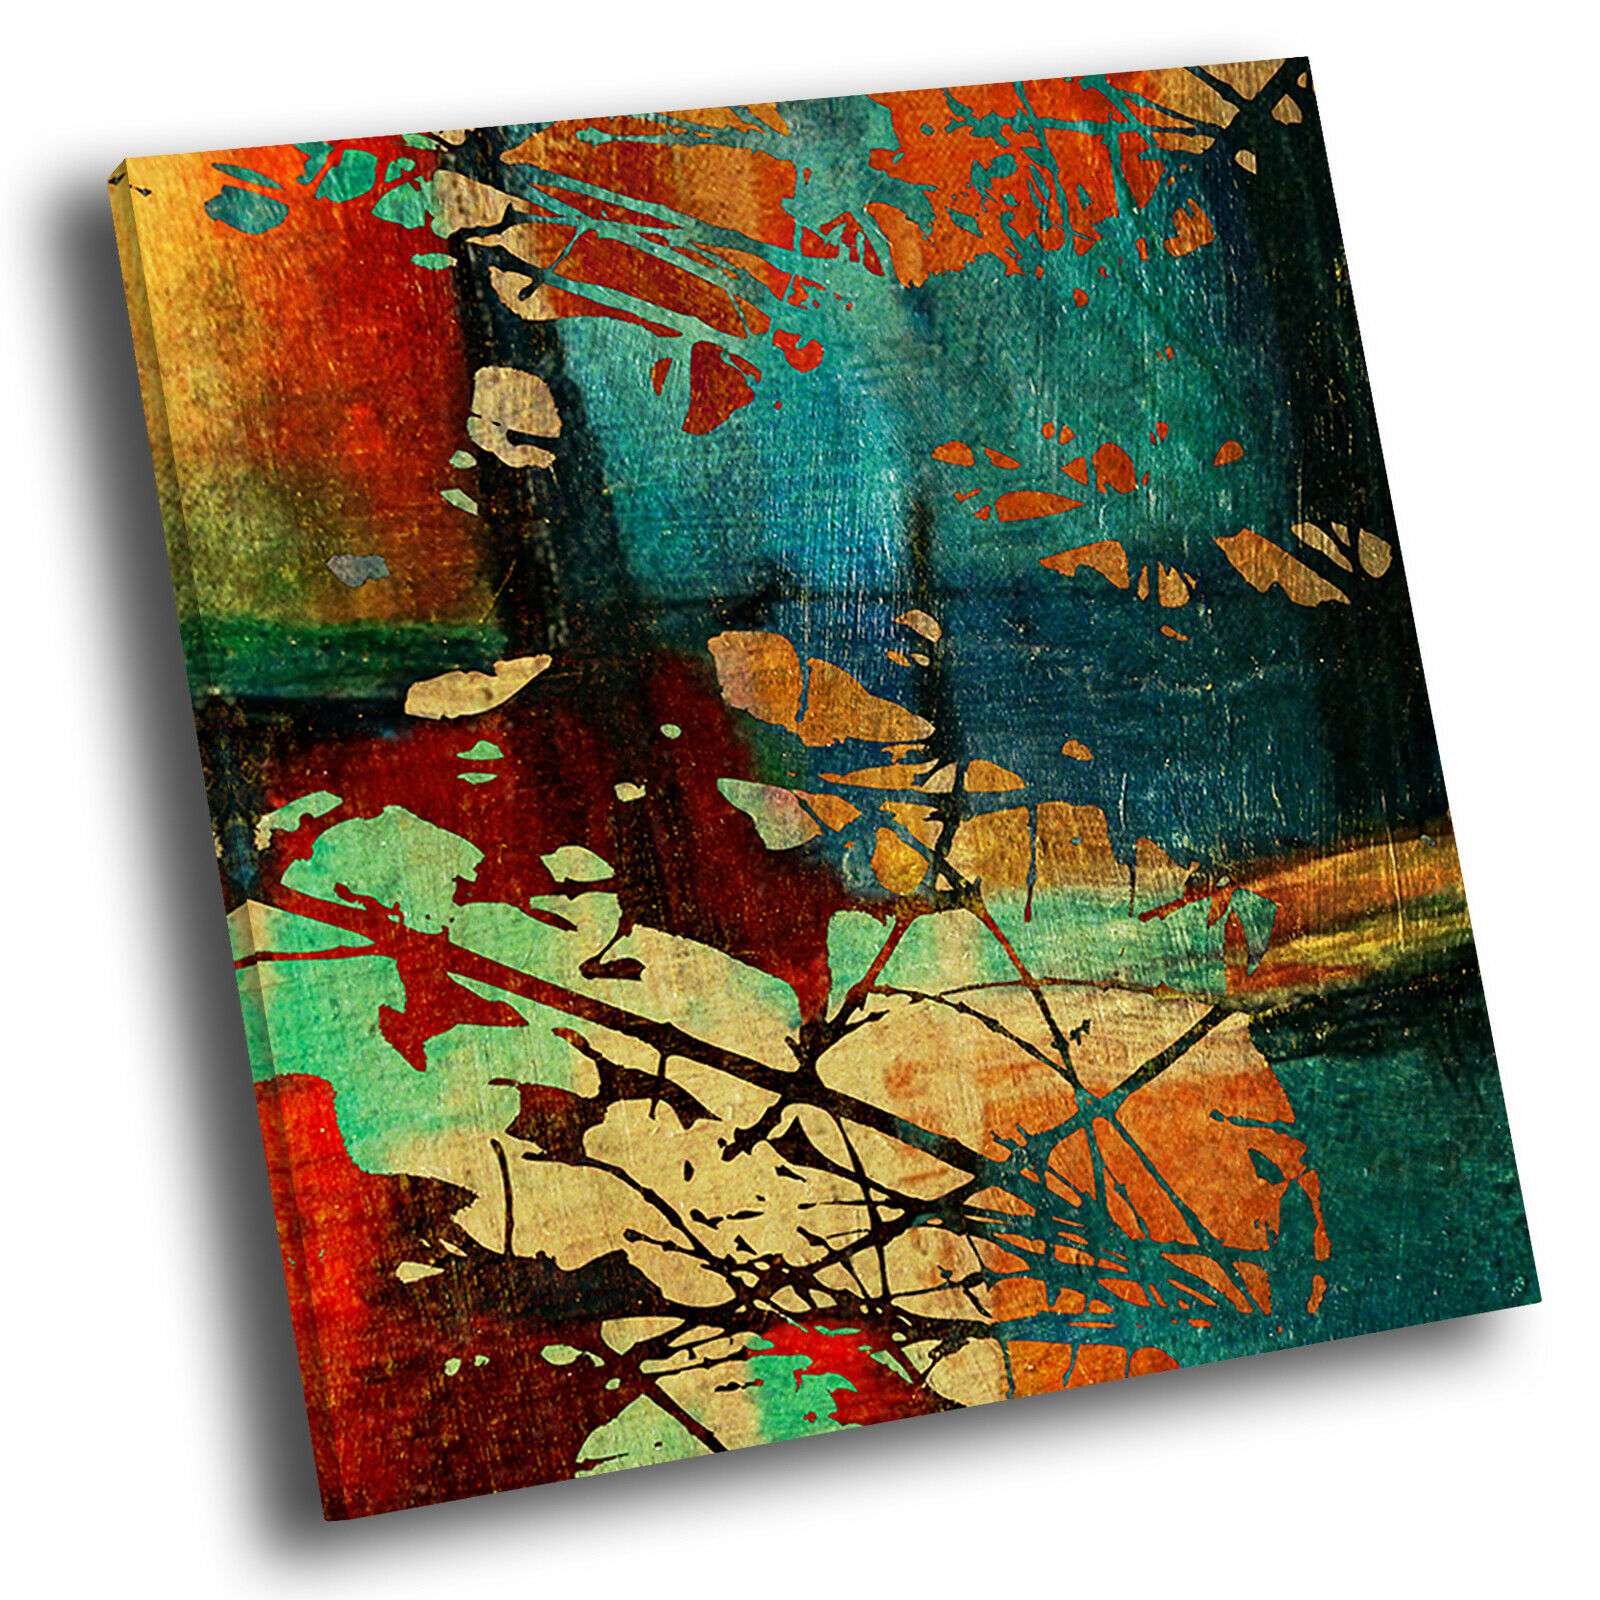 Grün Teal Blau rot Square Abstract Photo Canvas Wall Art Large Picture Prints